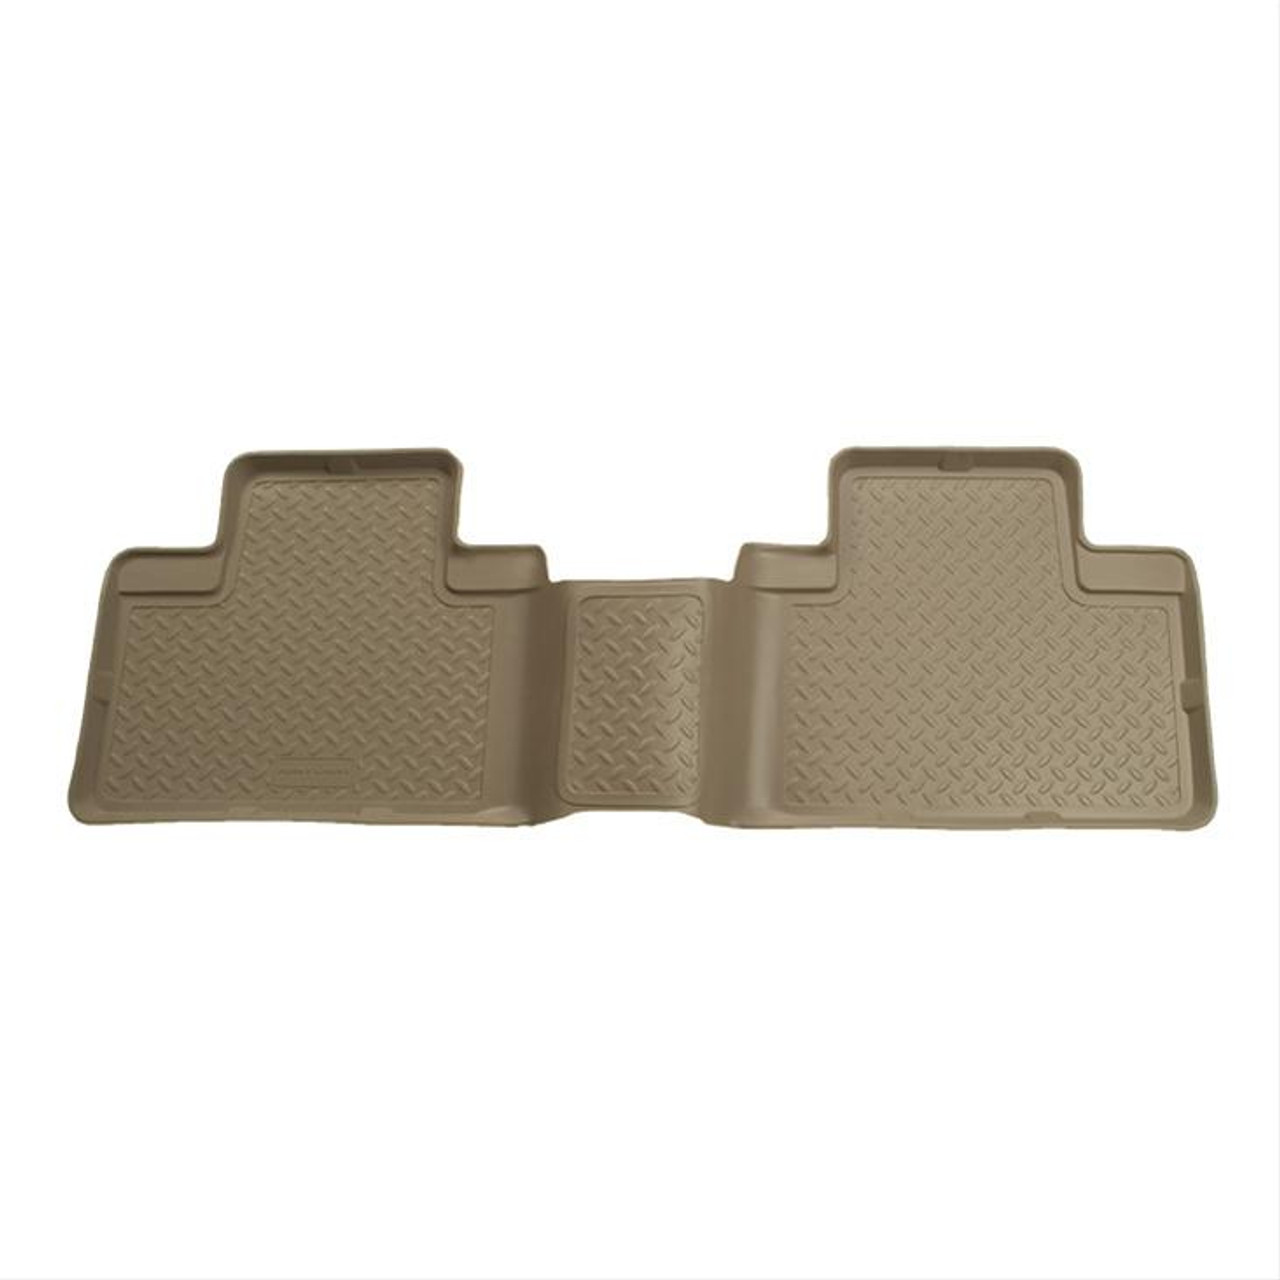 00-05 EXCURSION 3RD SEAT FLOOR LINER TAN